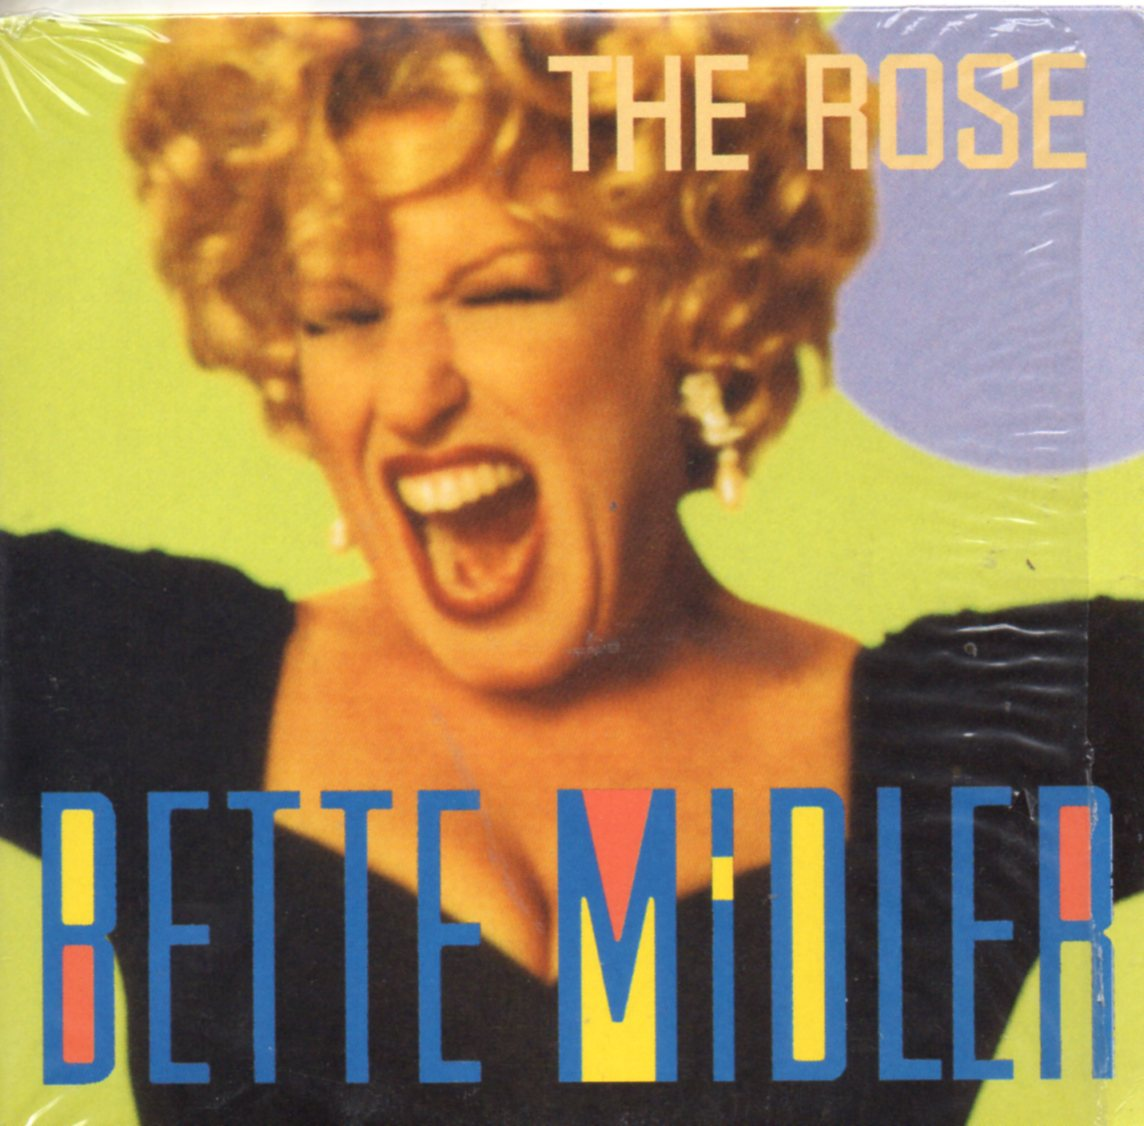 BETTE MIDLER - Married man Australia - Maxi 45T